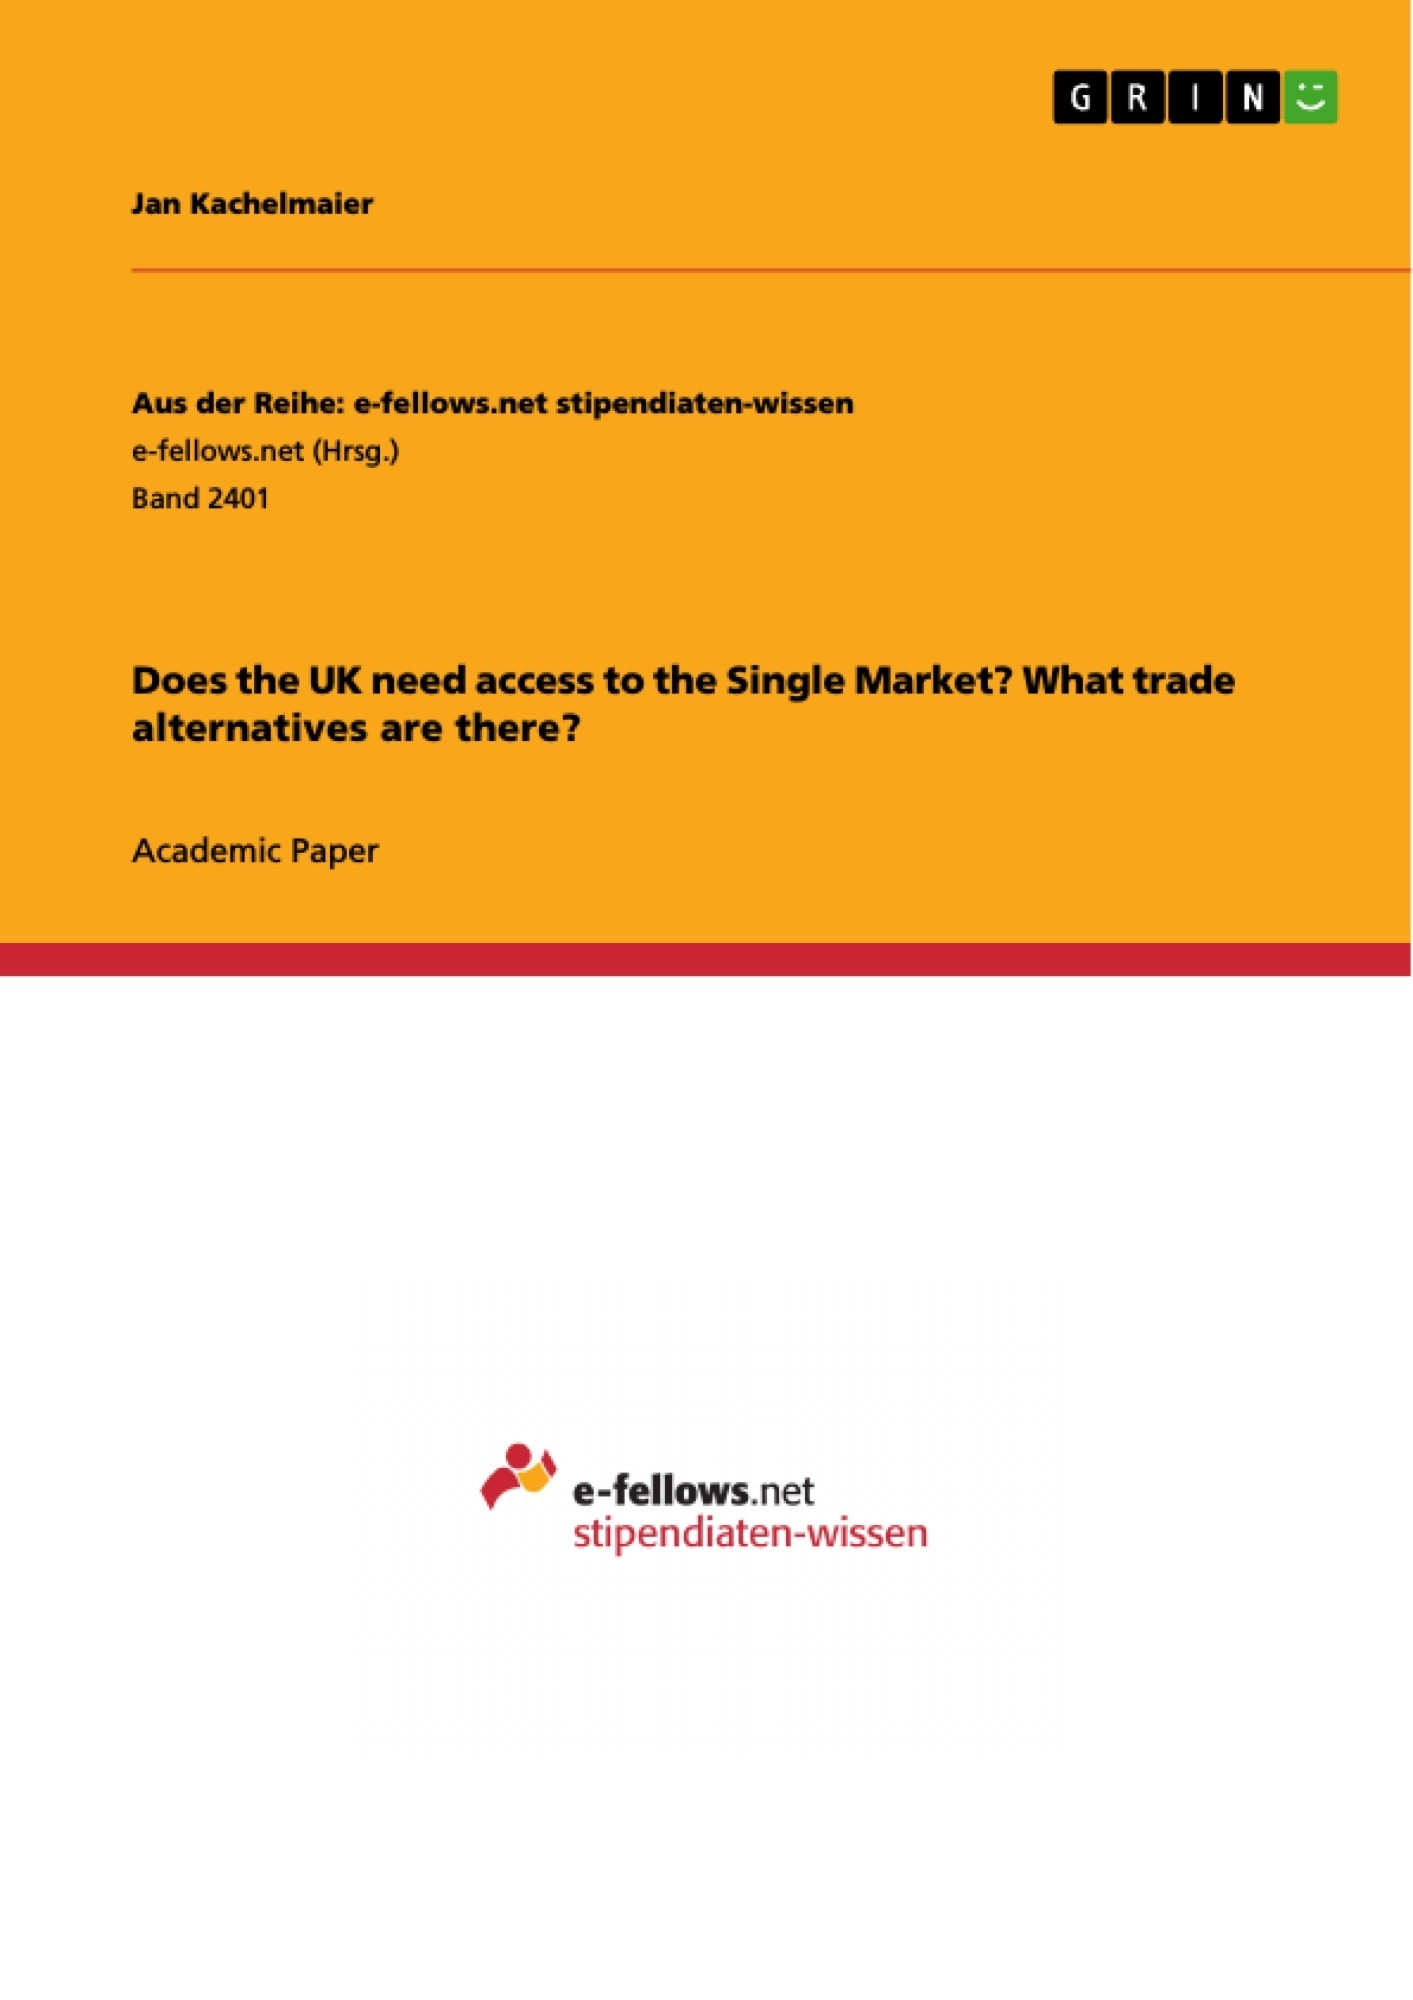 Title: Does the UK need access to the Single Market? What trade alternatives are there?